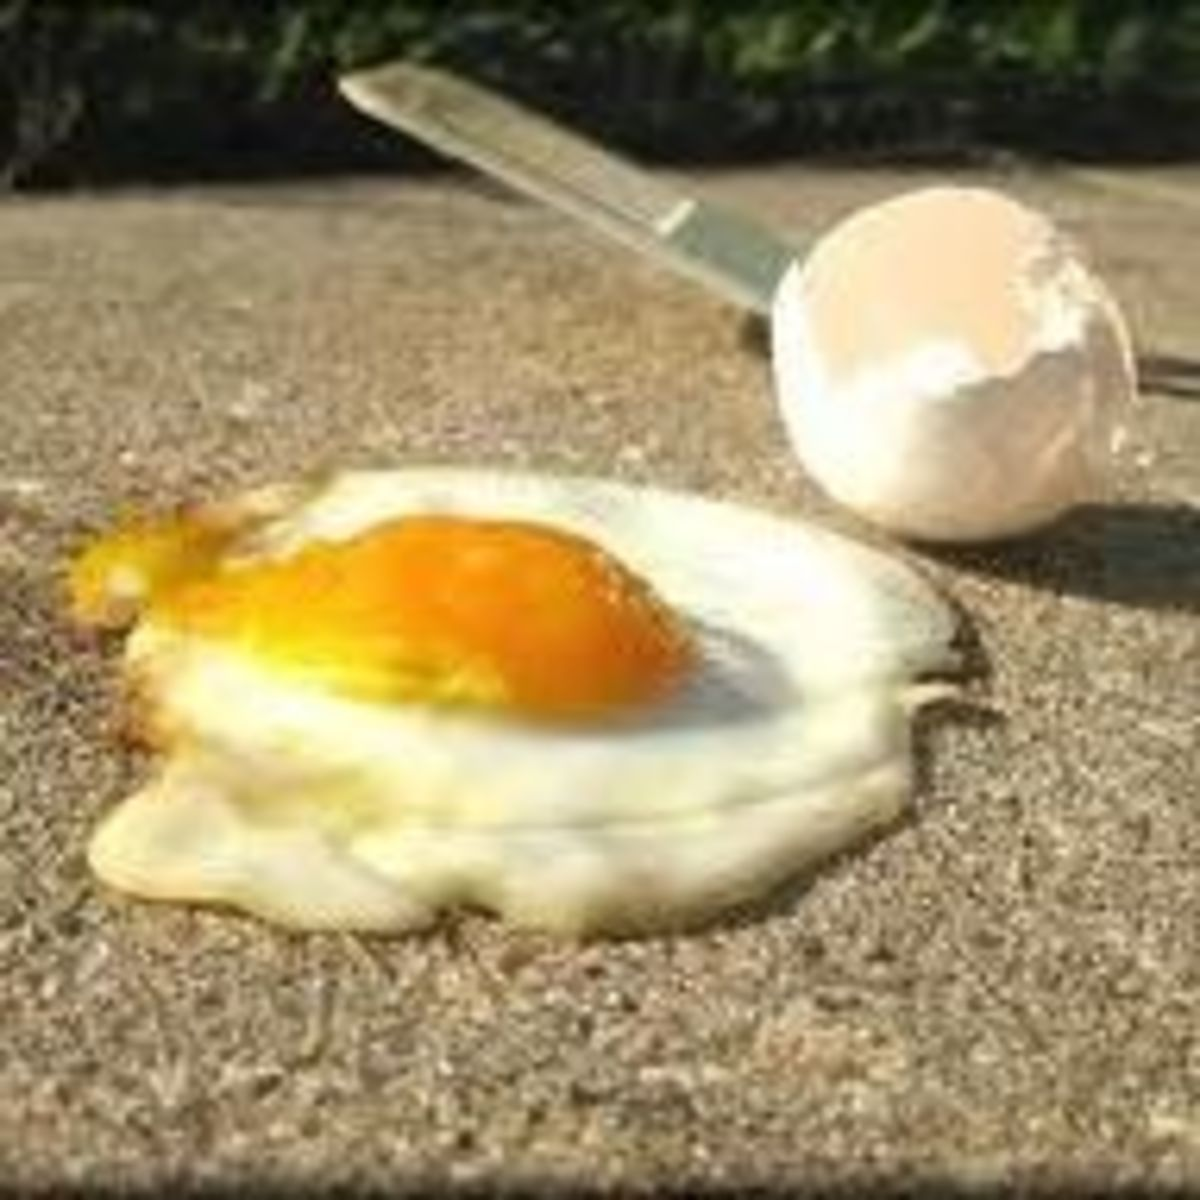 National Sidewalk Egg Frying Day